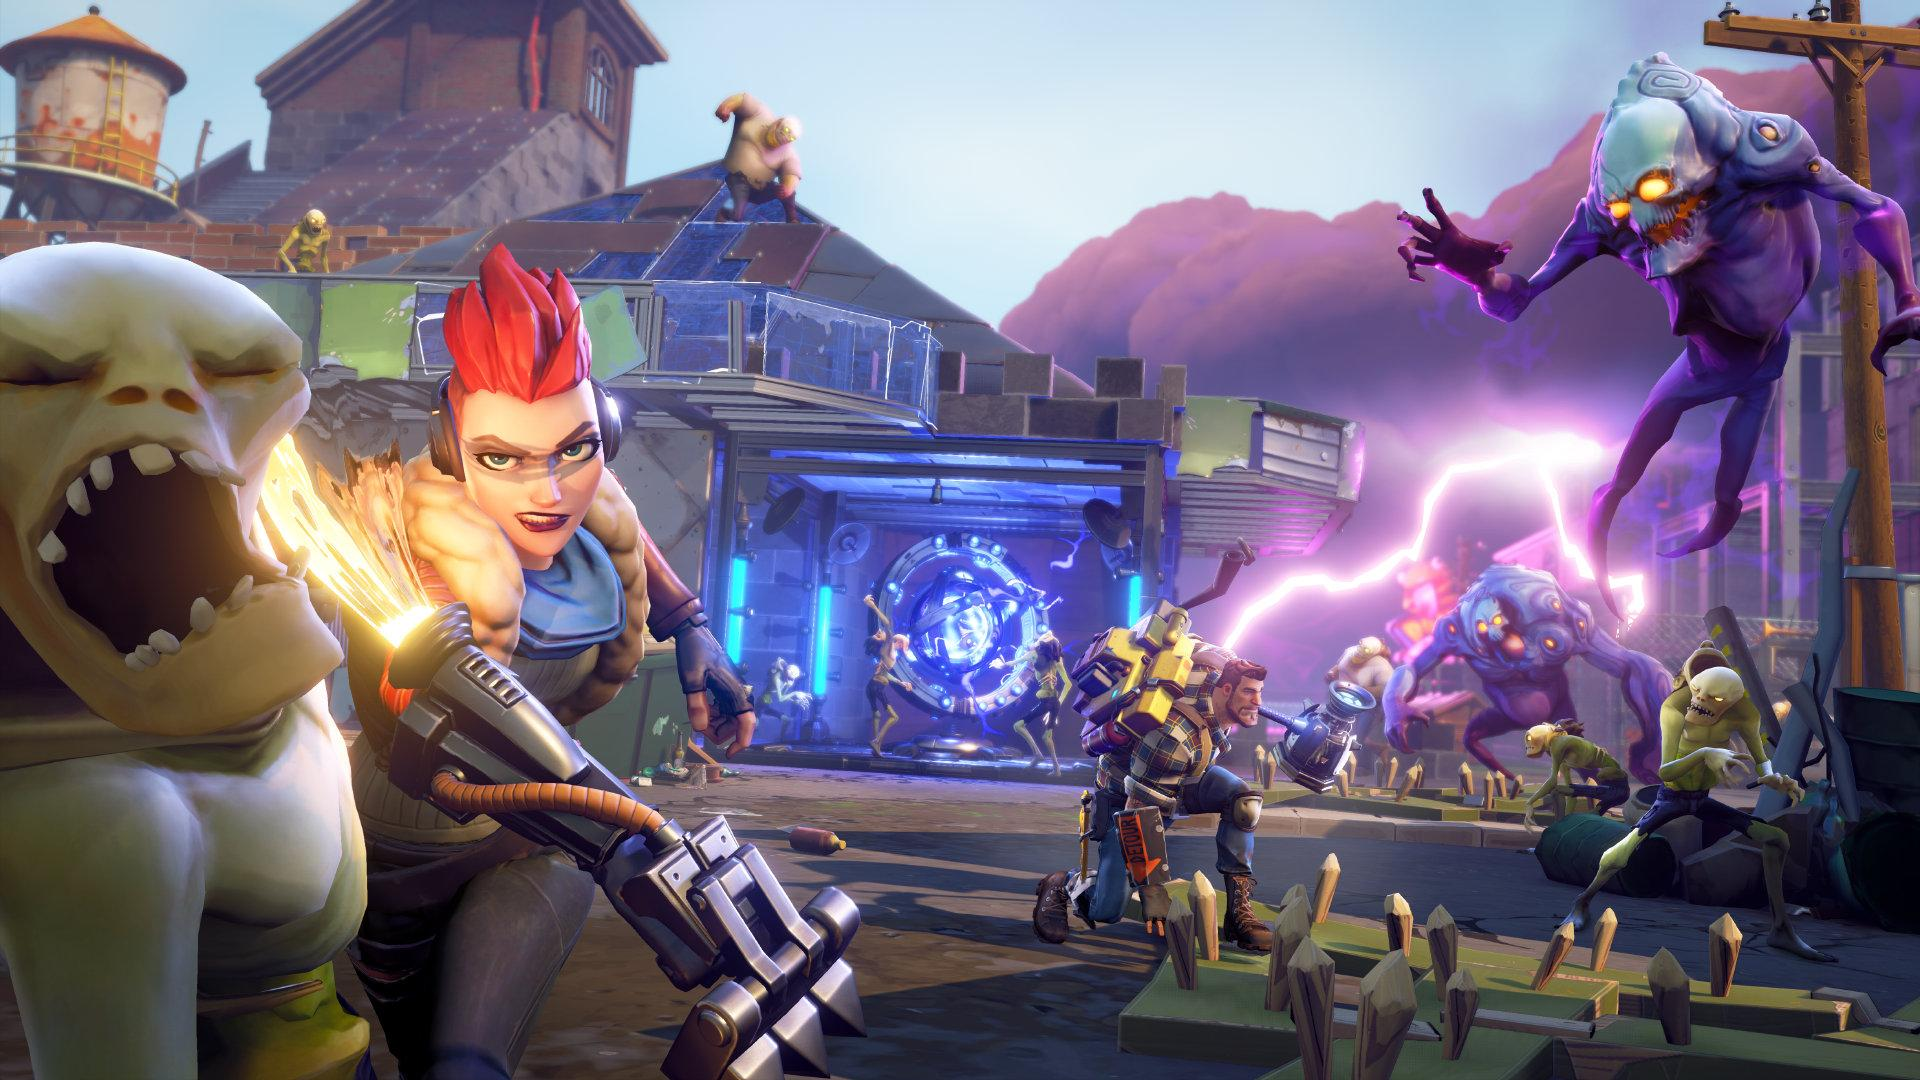 Fortnite Update v1.8.1 Now Out, Brings Increased Quest Drops, Tweaks